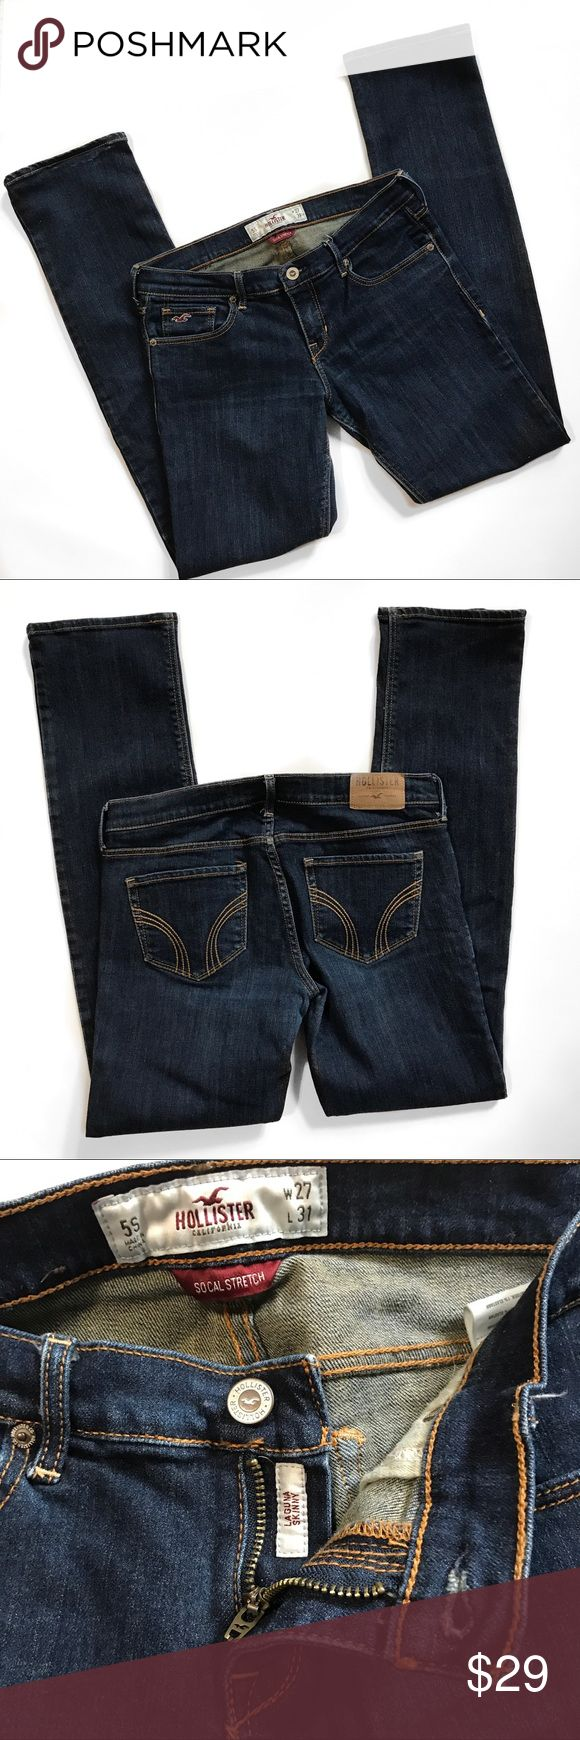 """Hollister Darker wash Laguna Skinny Jean Size 5 Great condition Darker wash laguna skinny jean...gold threading with a little wear to back bottom of pant legs but No fraying there or anywhere...could be a Dressy jeans with a great pair of heels...Size 5 they measure about 15"""" across waist laying flat (but stretched will give another 1-2"""") with an inseam about 30-30.25"""" and a rise of about 7""""....offers welcome, bundle to save more plus ⚡️📦📫😃💕 Hollister Jeans Skinny"""